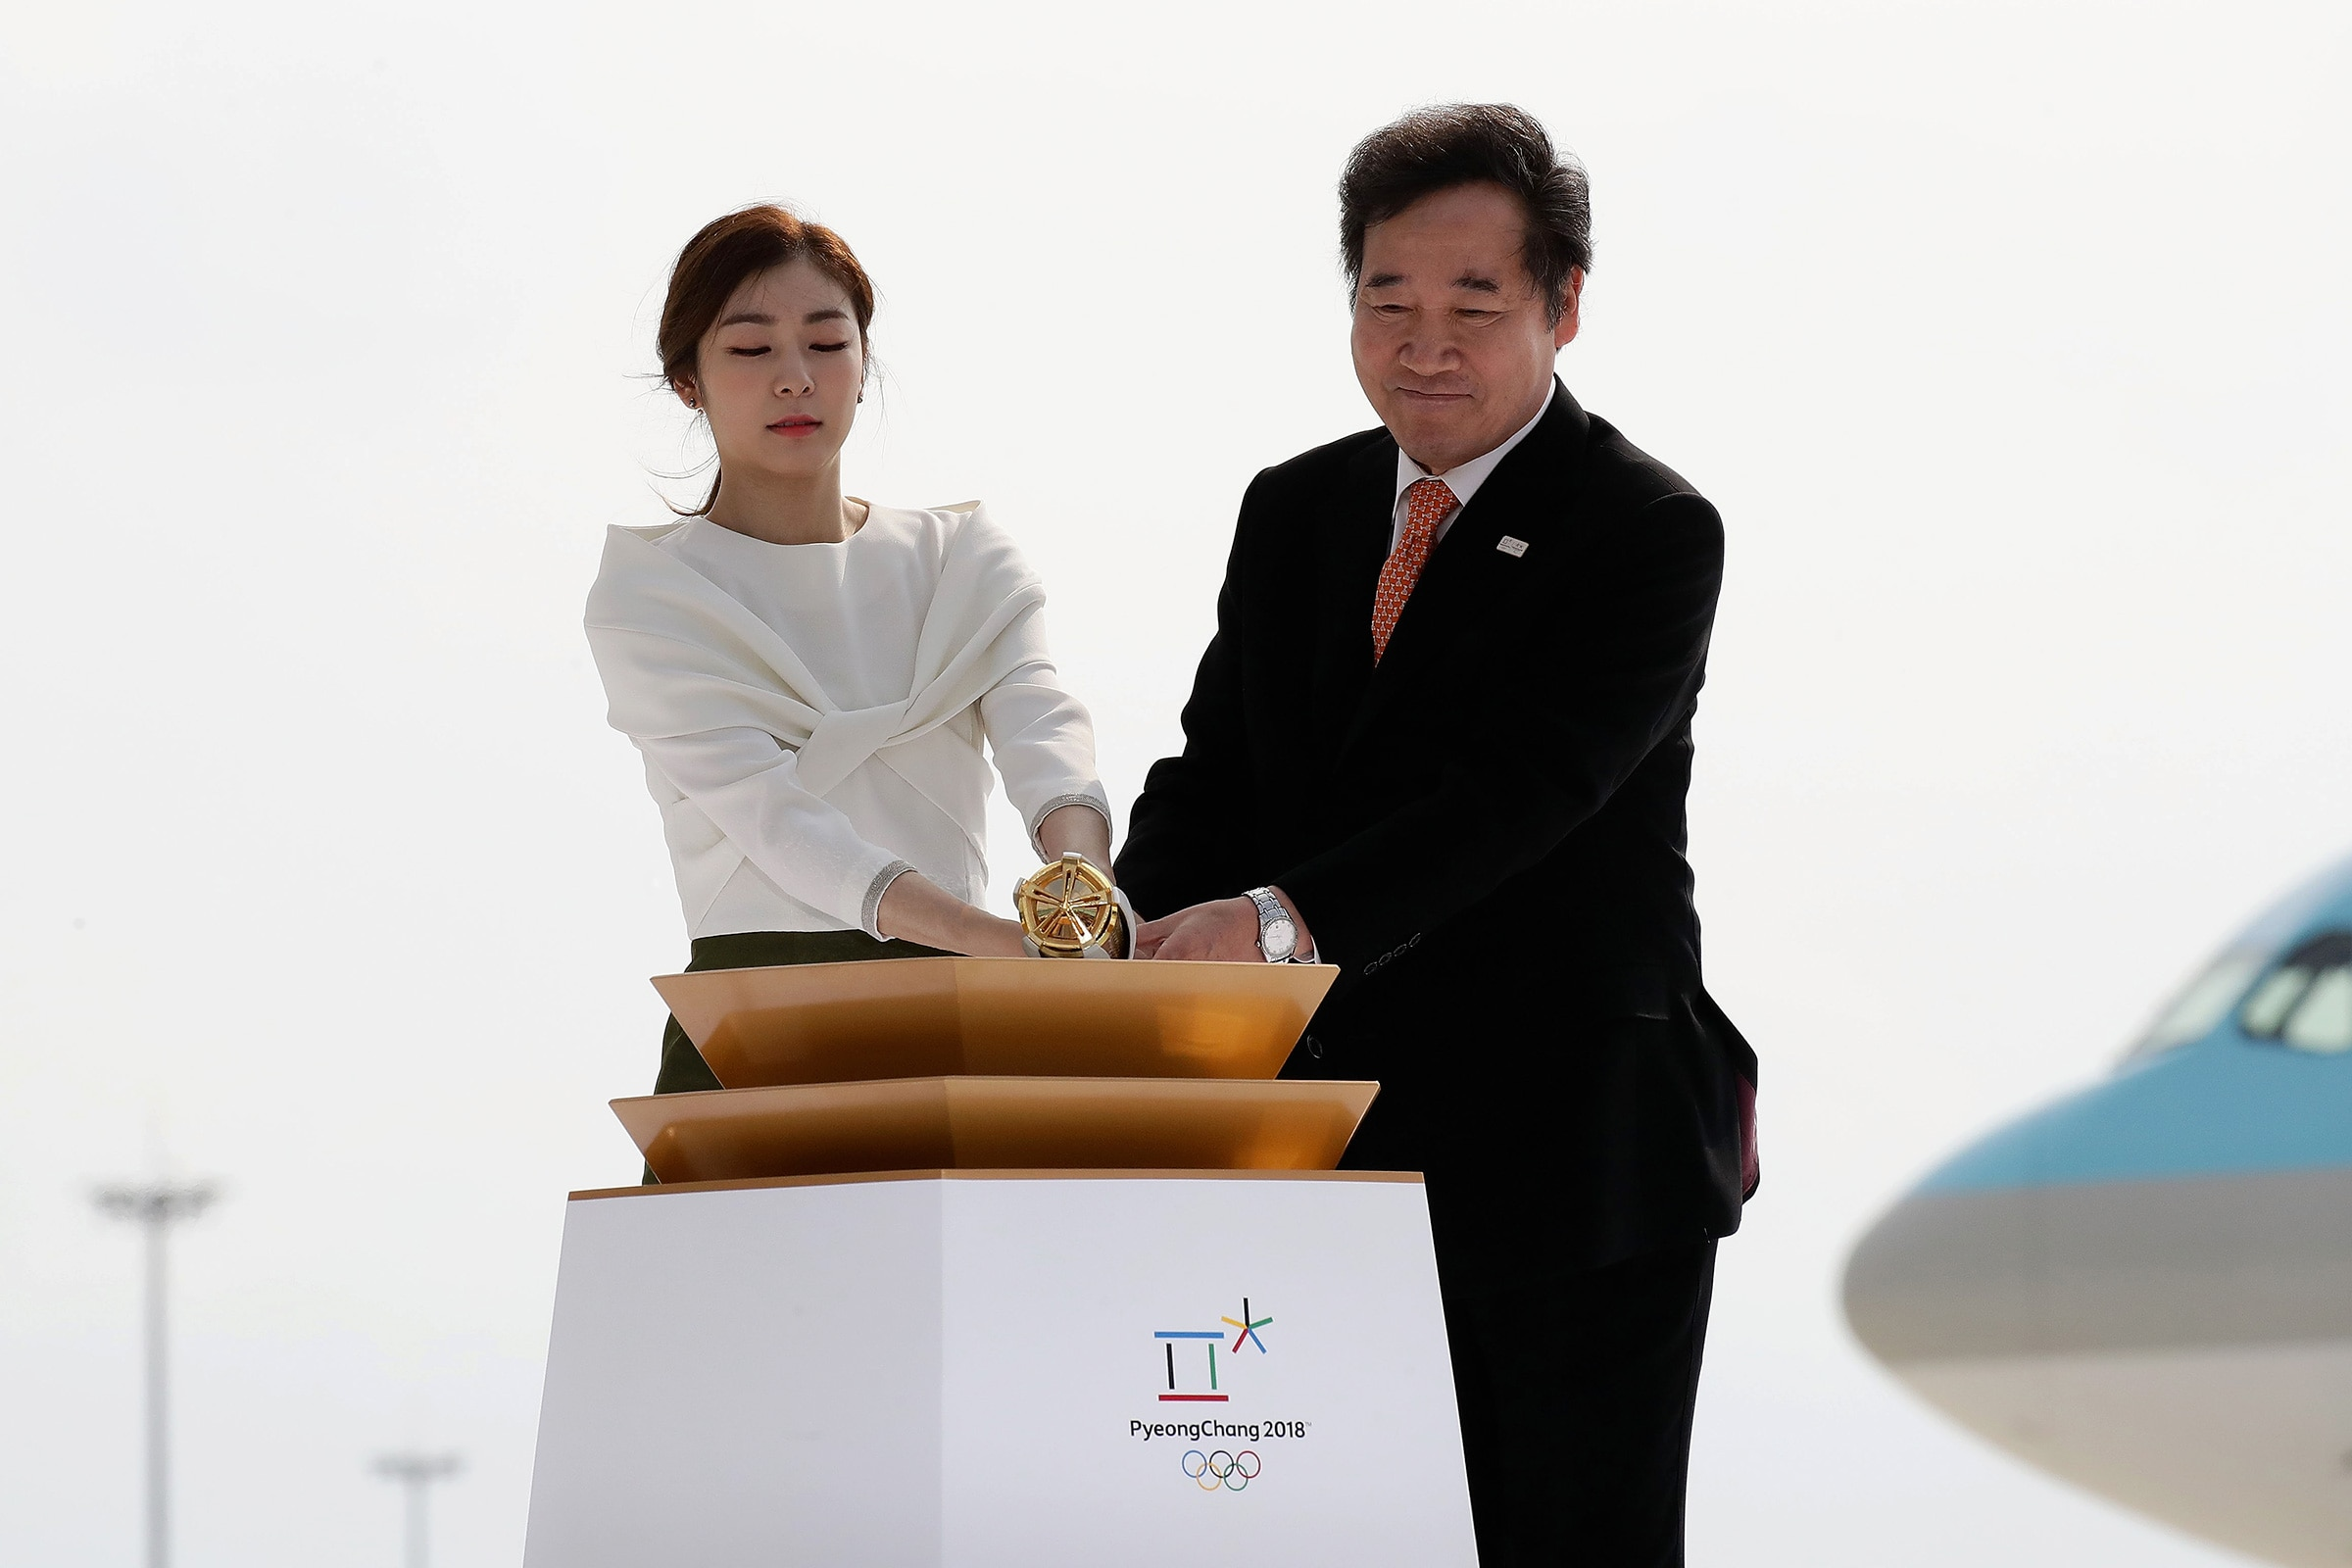 PyeongChang 2018 Olympic Torch Relay - Day 1